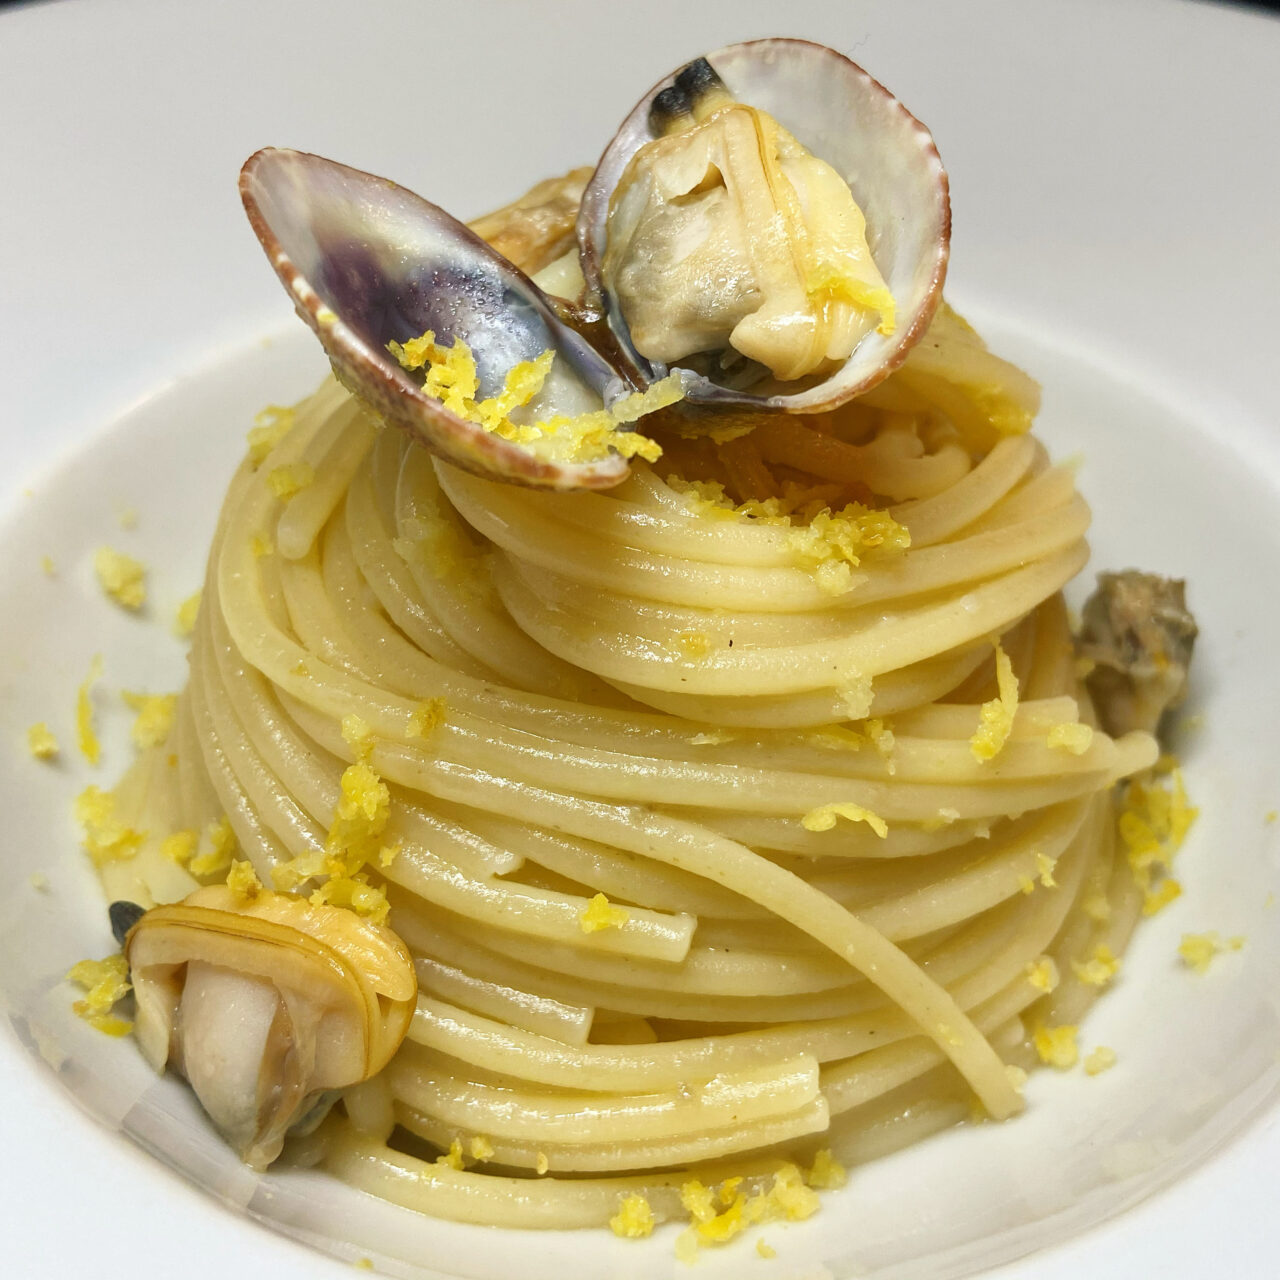 Pasta Armando Spaghetti with clams and lemon zest